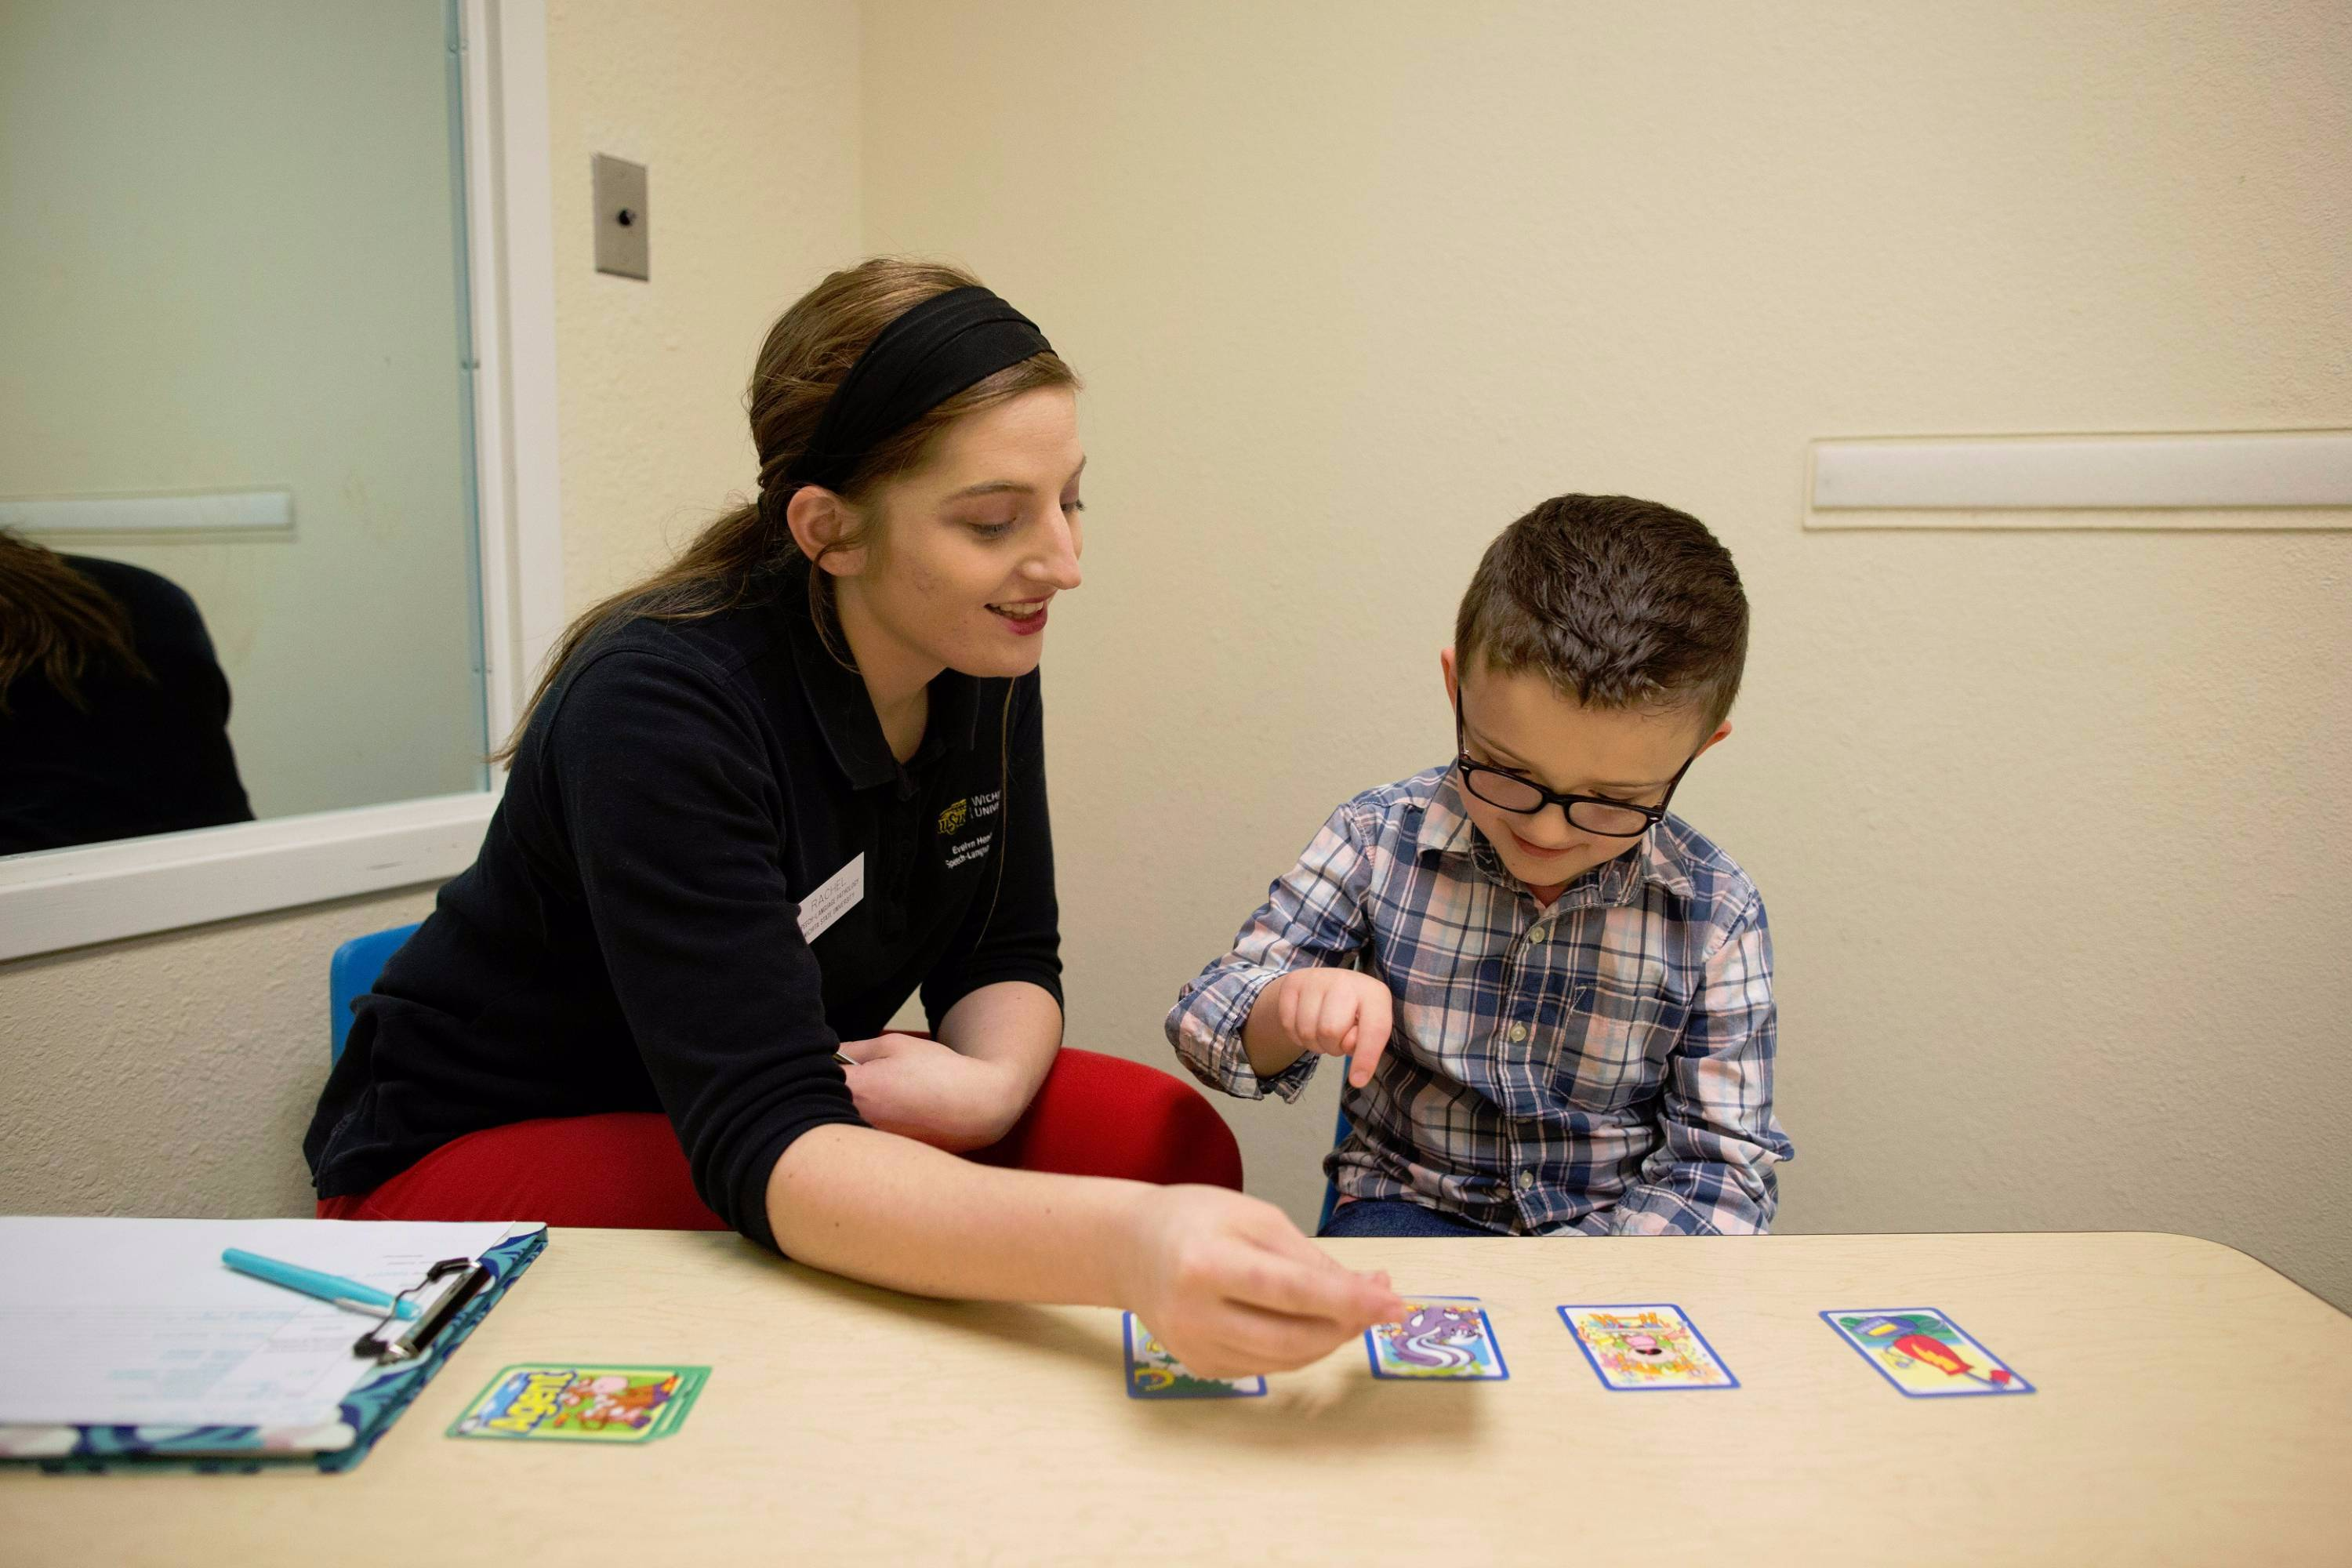 Speech-Language Pathology student working with child